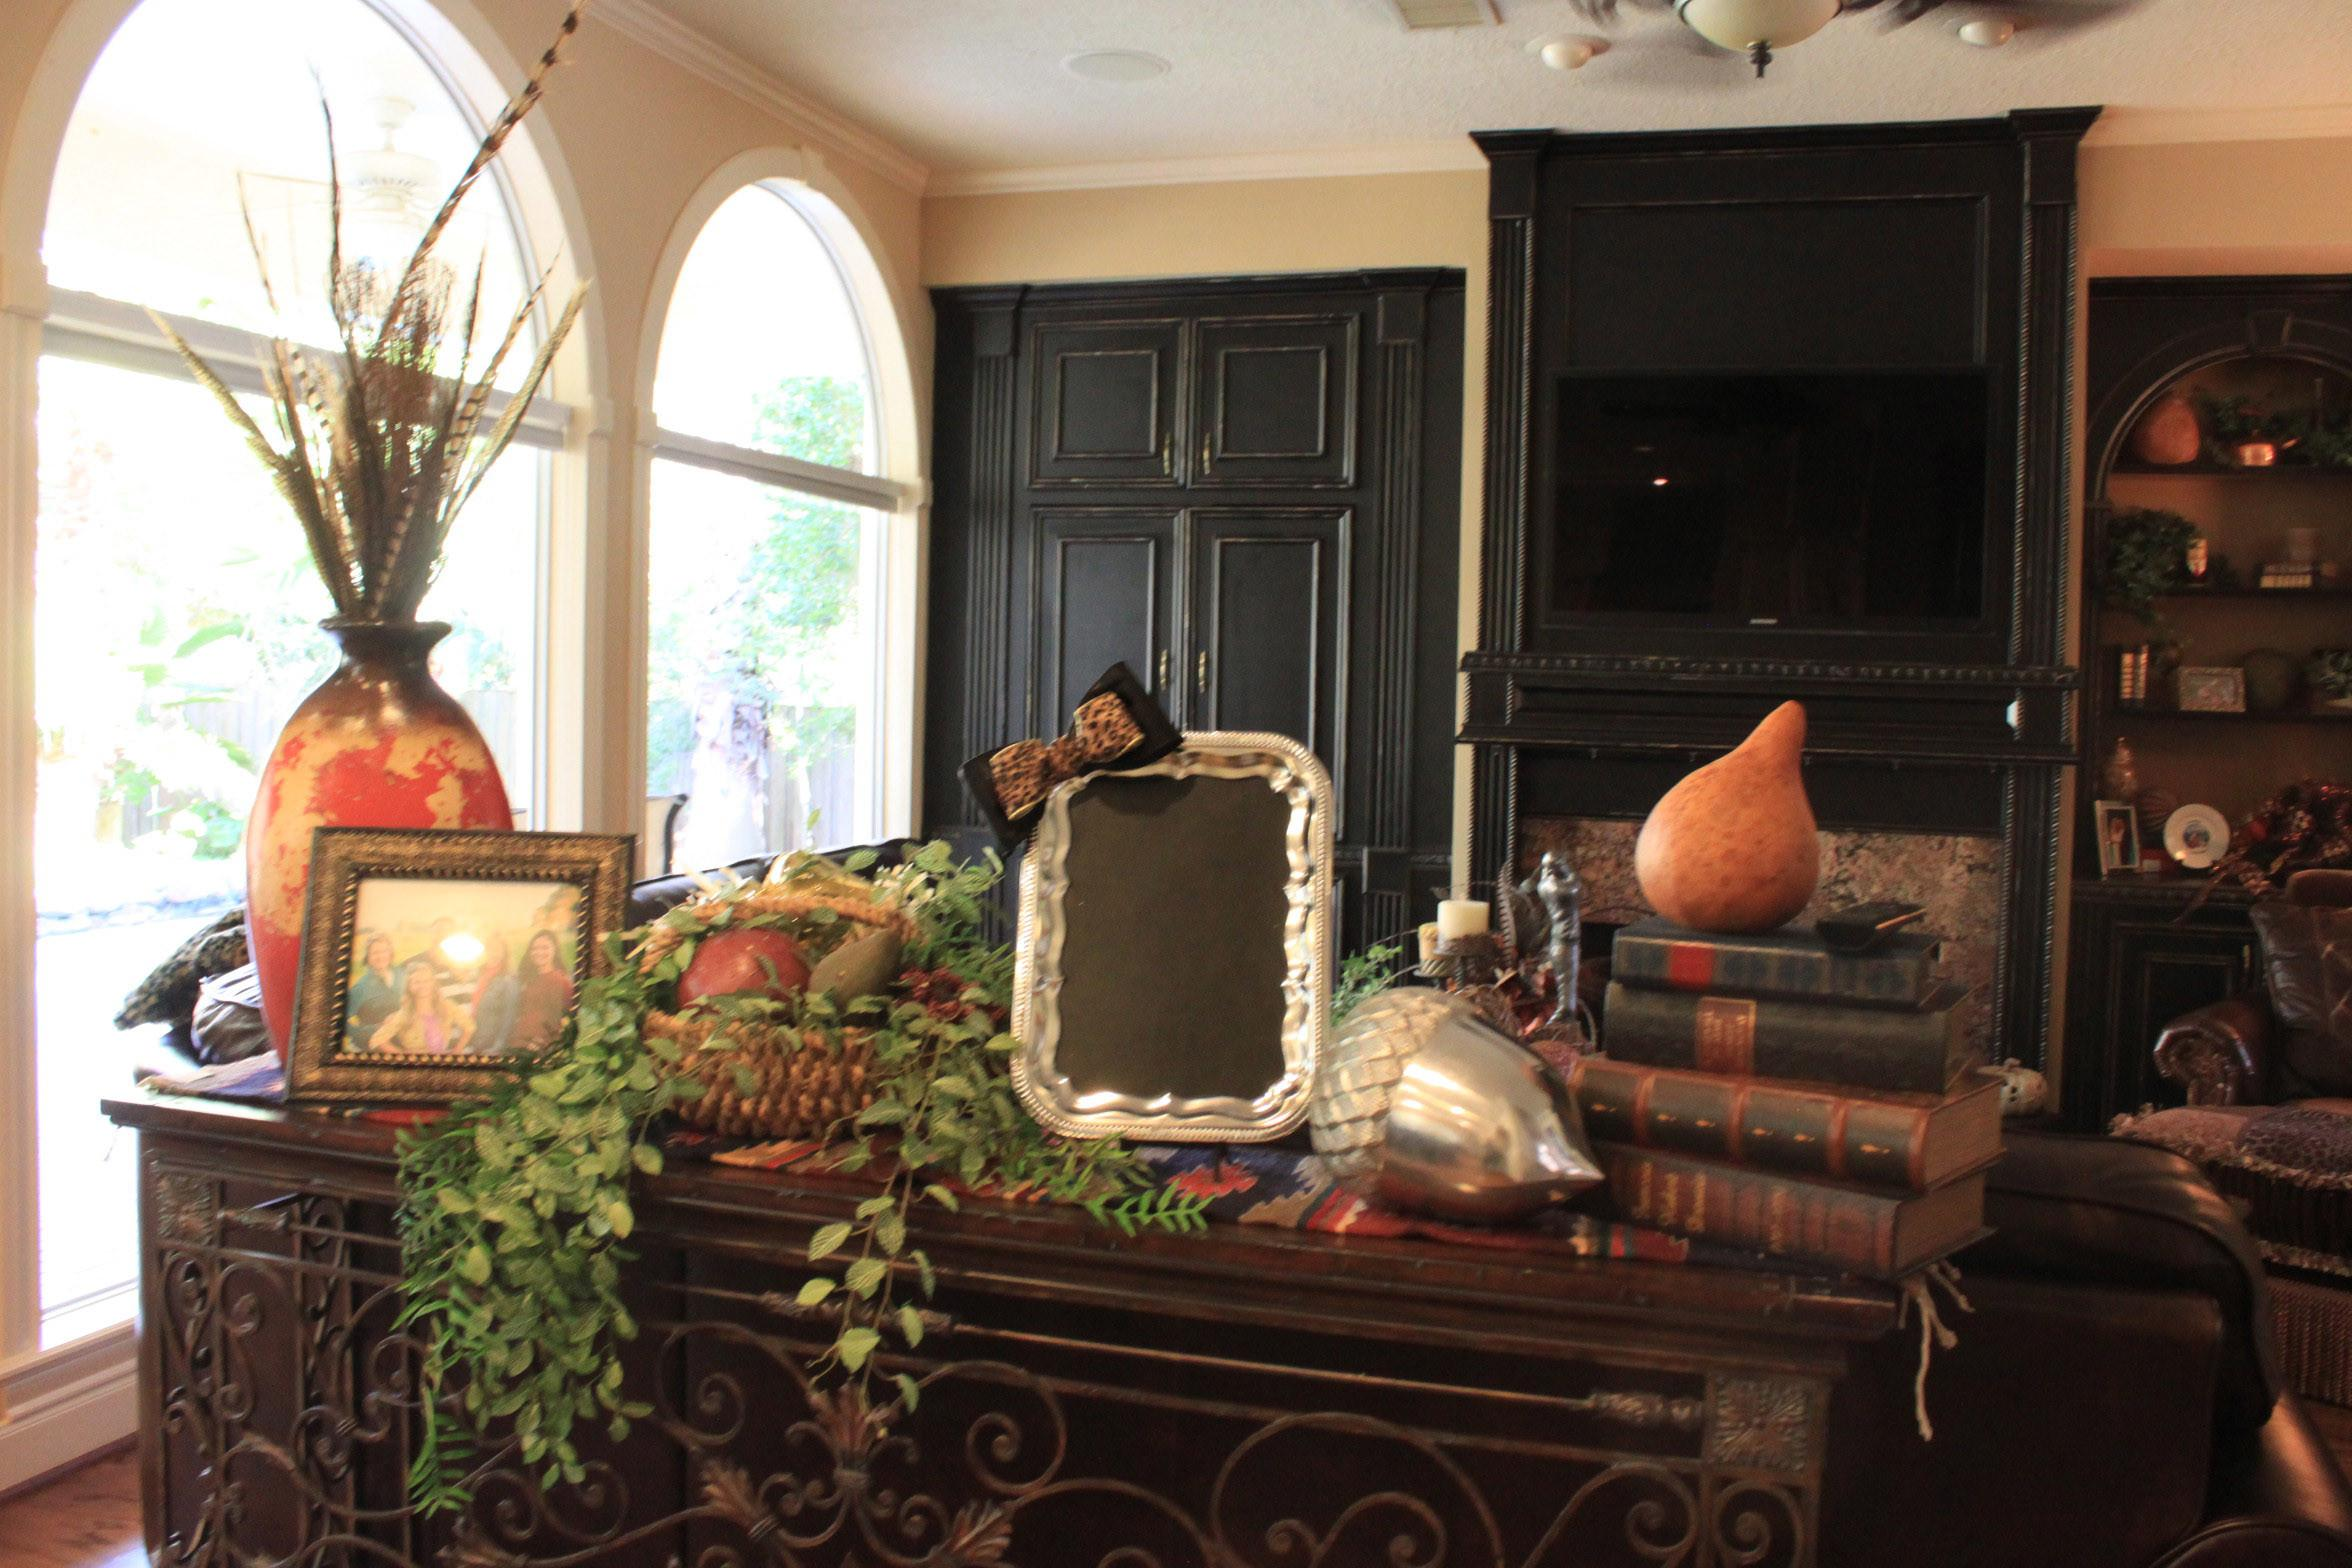 Using Thrift Store Your Fall Decor Too Cheap Blondes